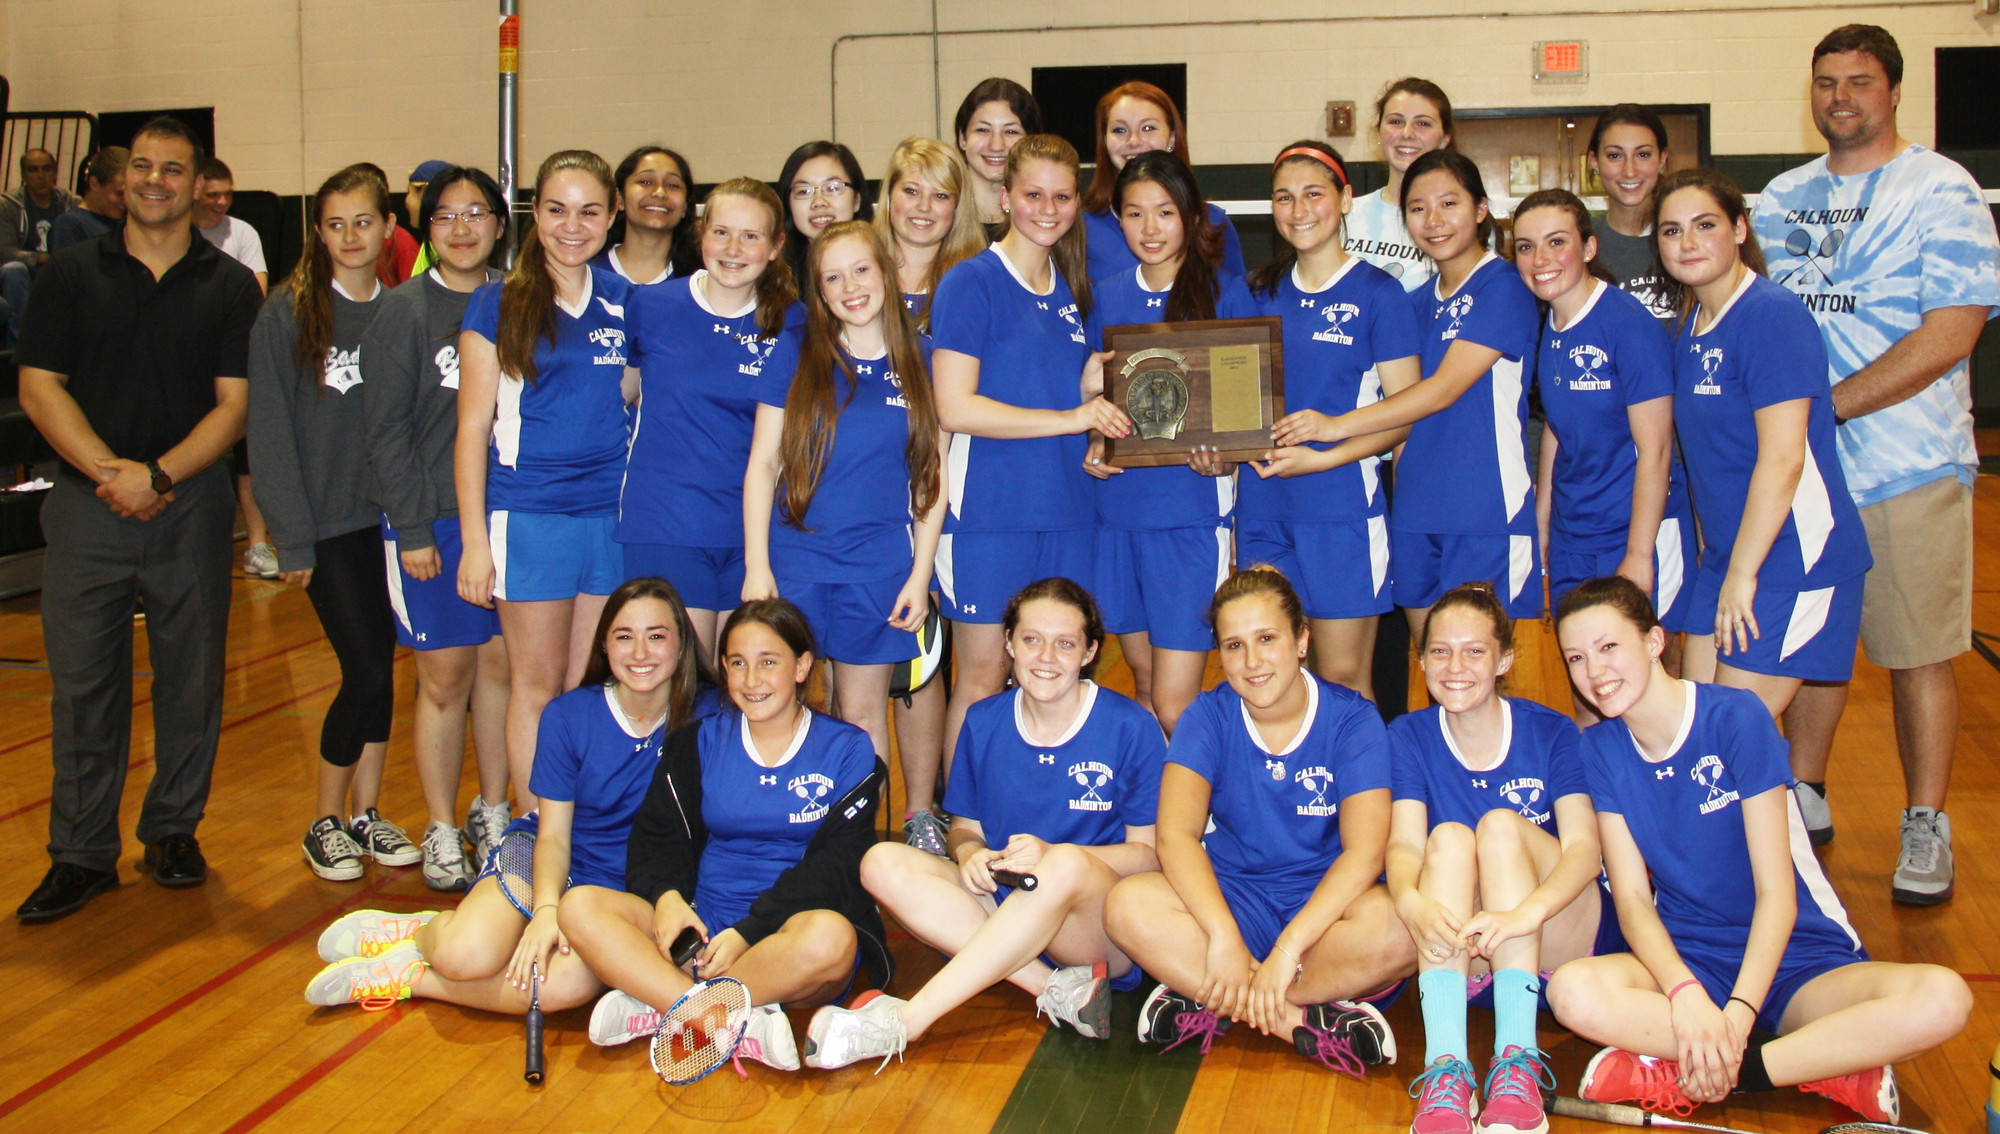 Calhoun enjoyed a big finish to the badminton season with nine straight wins, including a victory over Port Washington in the county finals.